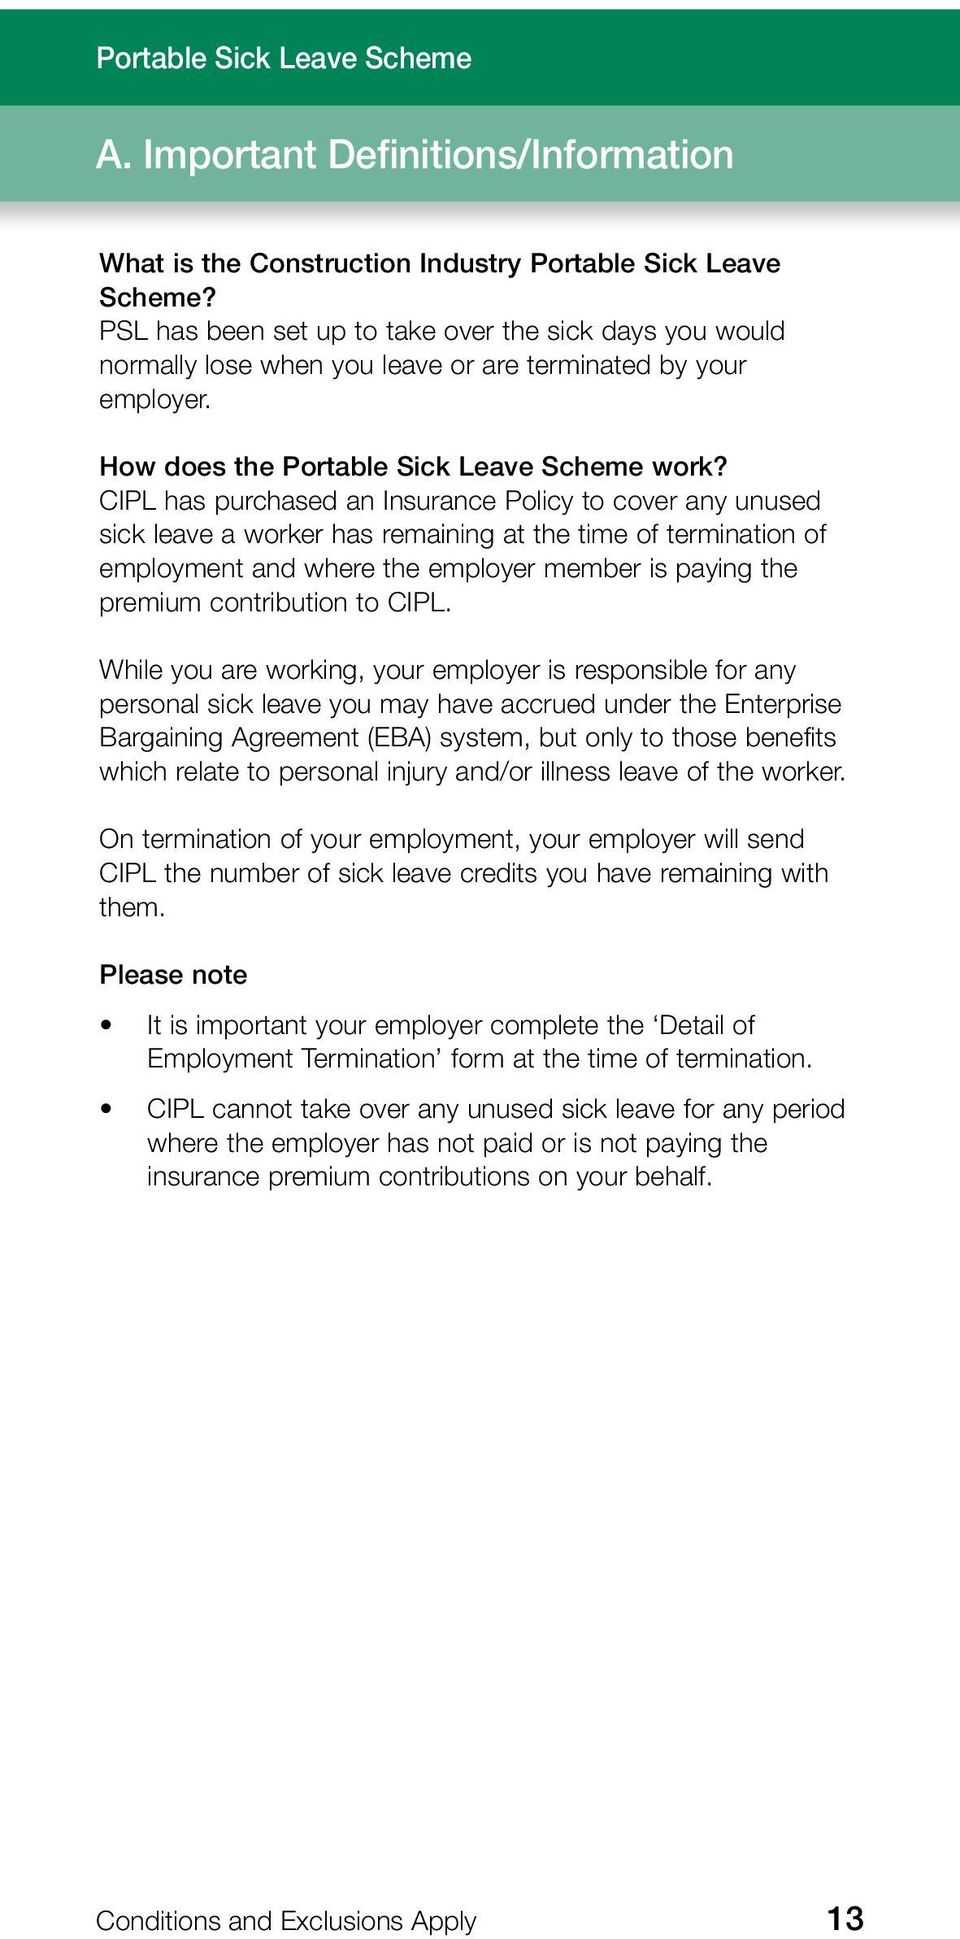 CIPL has purchased an Insurance Policy to cover any unused sick leave a worker has remaining at the time of termination of employment and where the employer member is paying the premium contribution